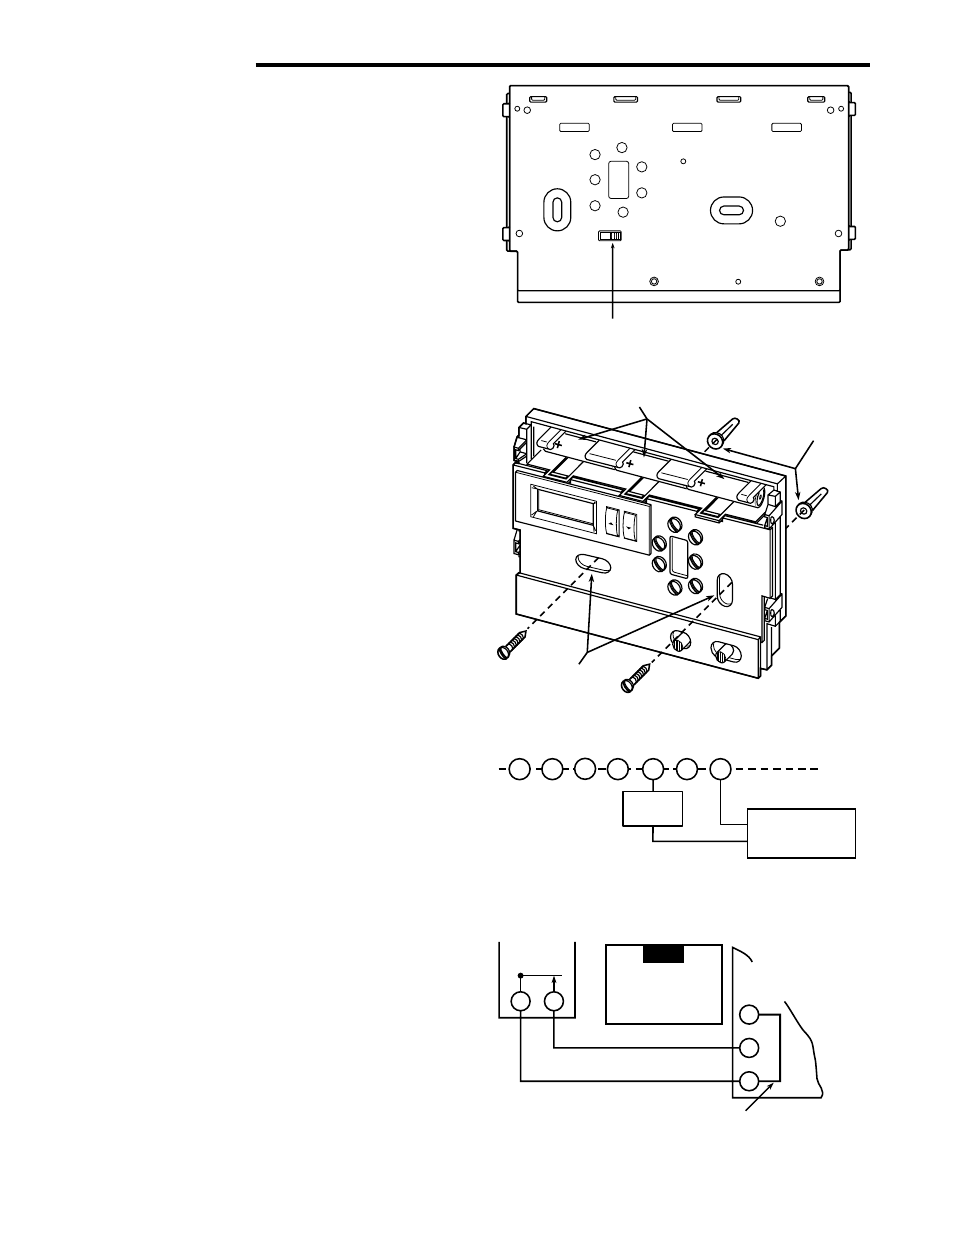 Installation Remove Old Thermostat Attach Base To Wall Wiring A Furnace White Rodgers 1f86 444 User Manual Page 2 4